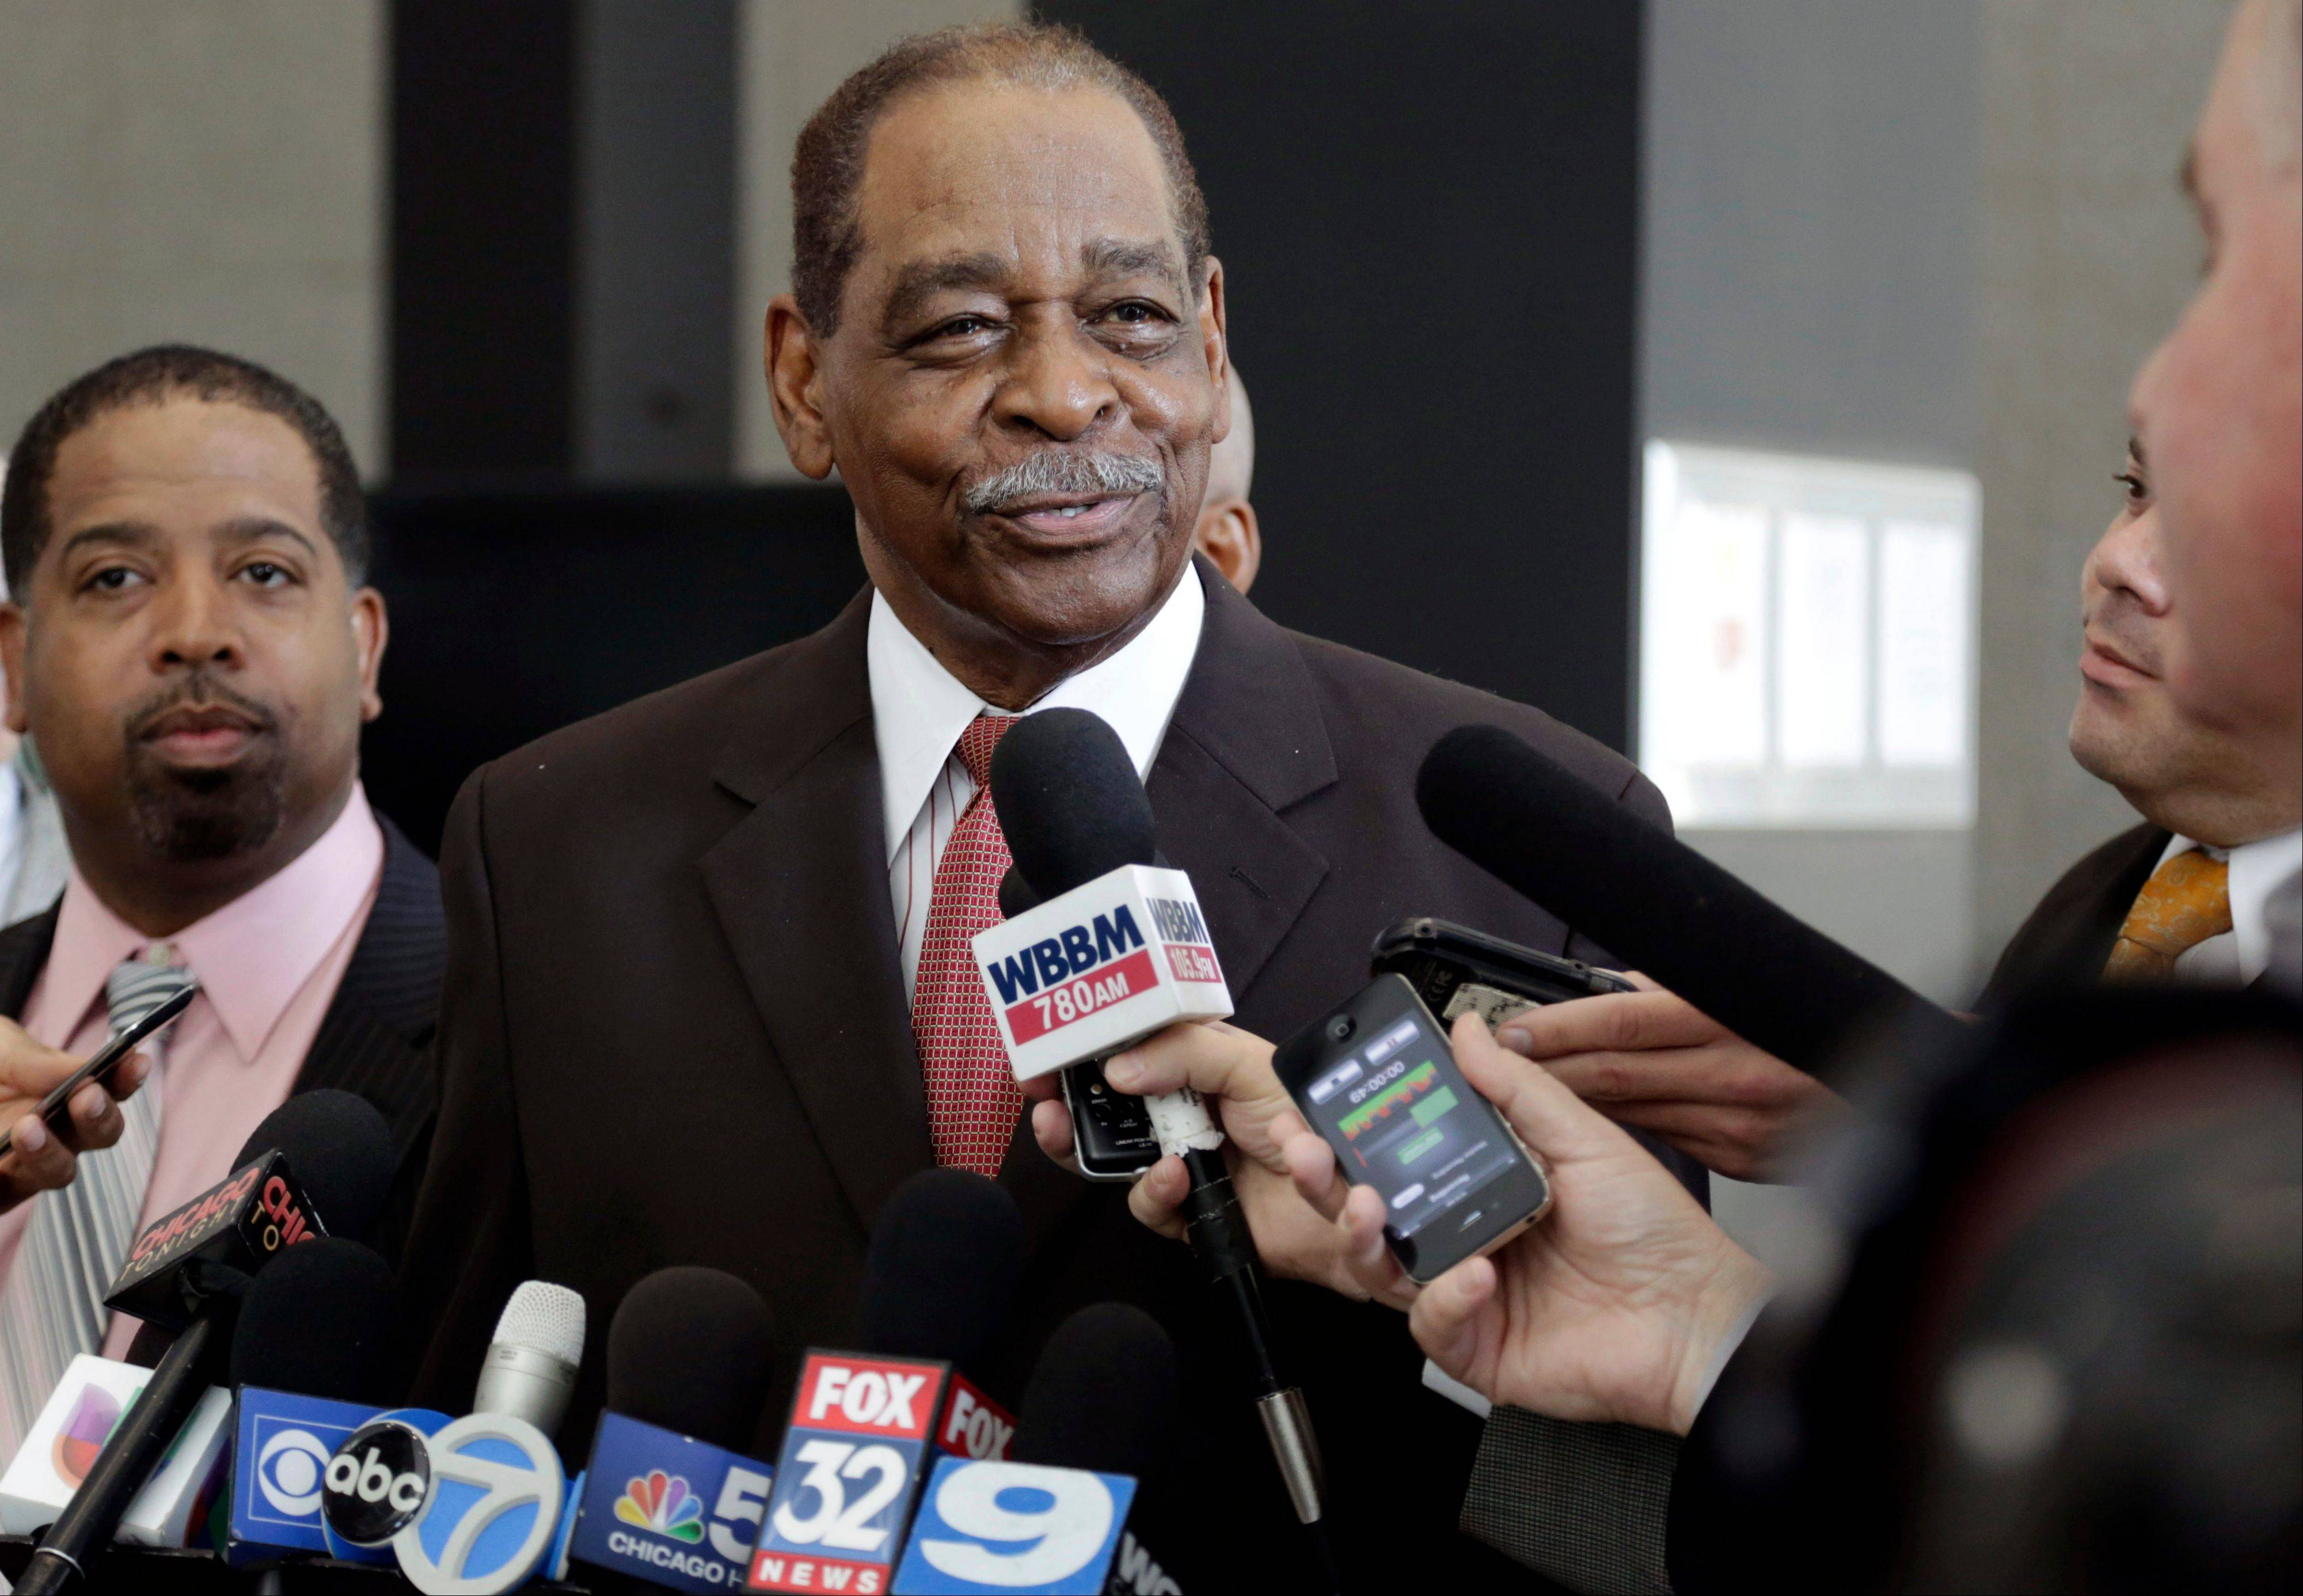 Former Cook County Commissioner William Beavers speaks at a news conference after being sentenced on Sept. 25.